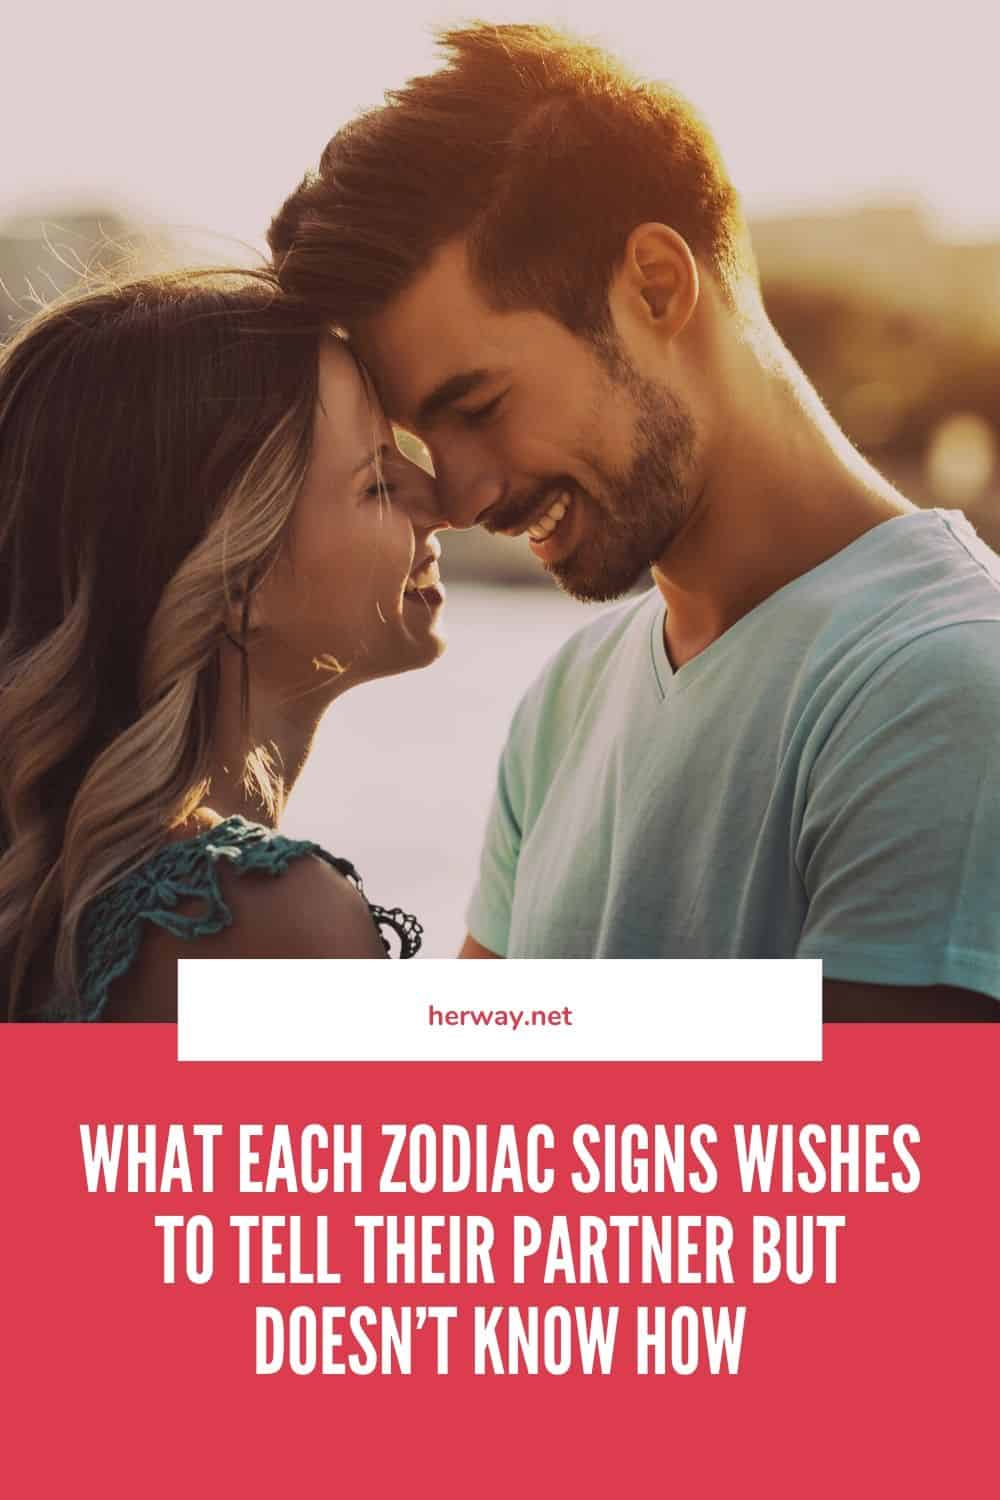 What Each Zodiac Signs Wishes To Tell Their Partner But Doesn't Know How